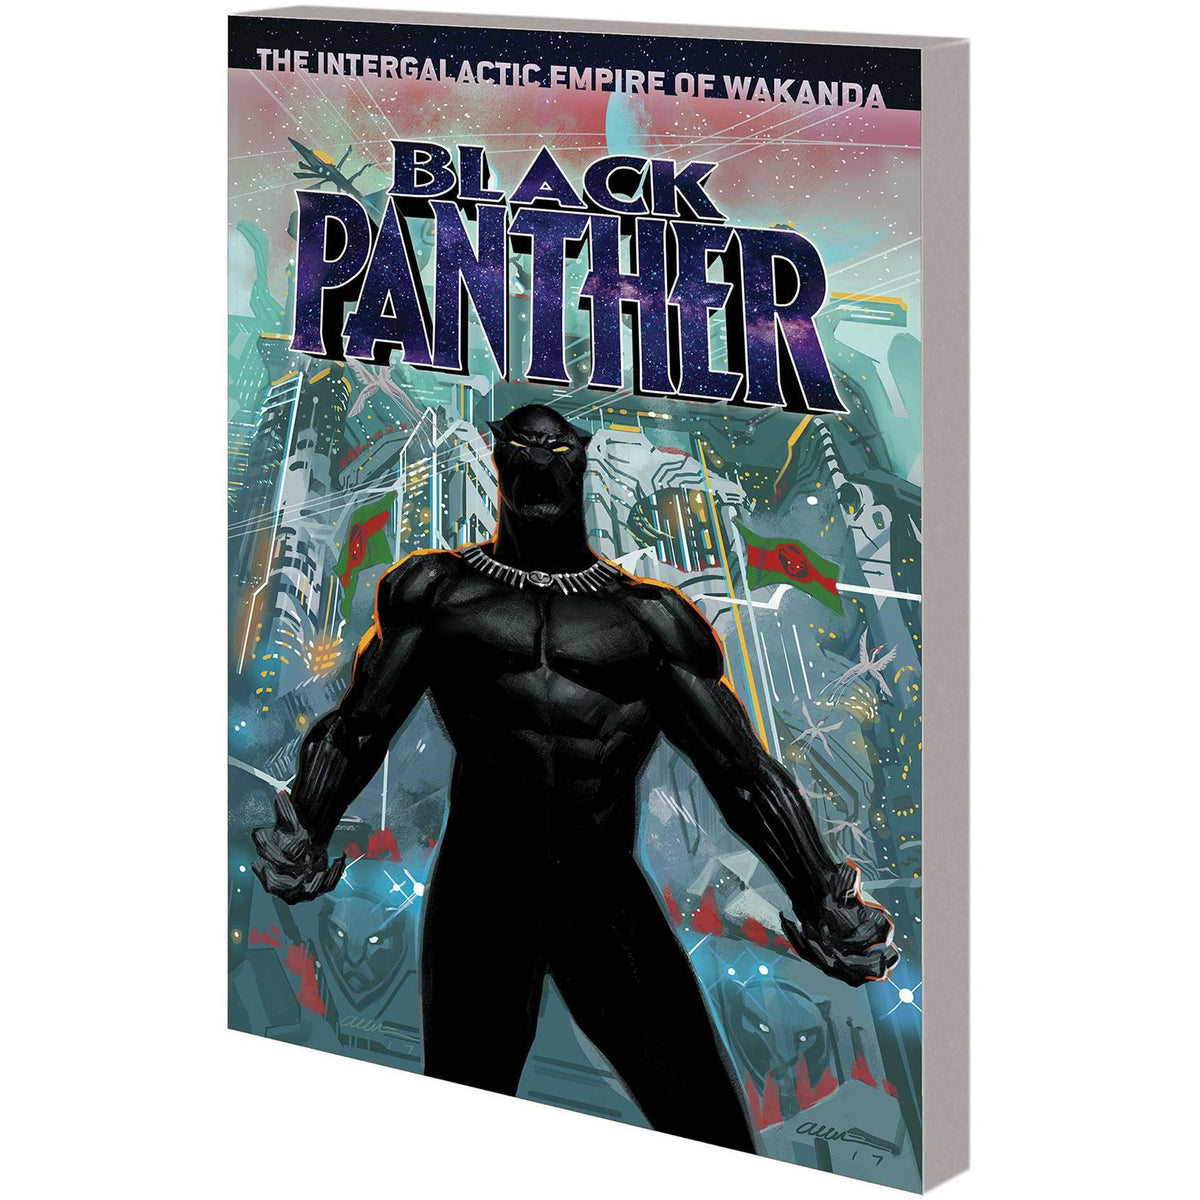 BLACK PANTHER: THE INTERGALACTIC EMPIRE WAKANDA PART 01